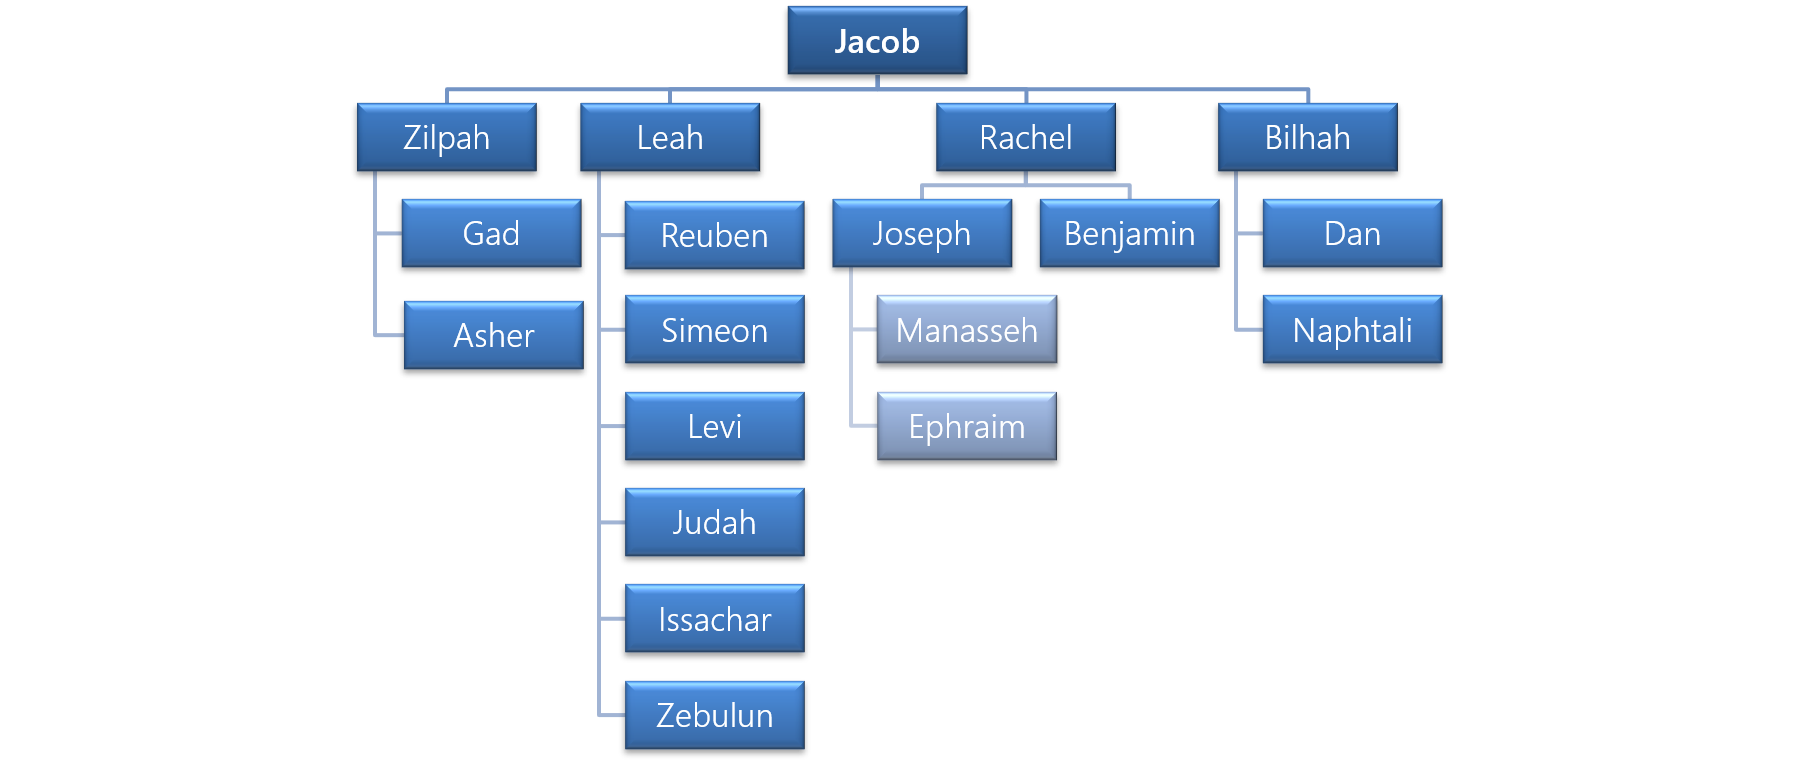 Figure 1 - The Family of Jacob